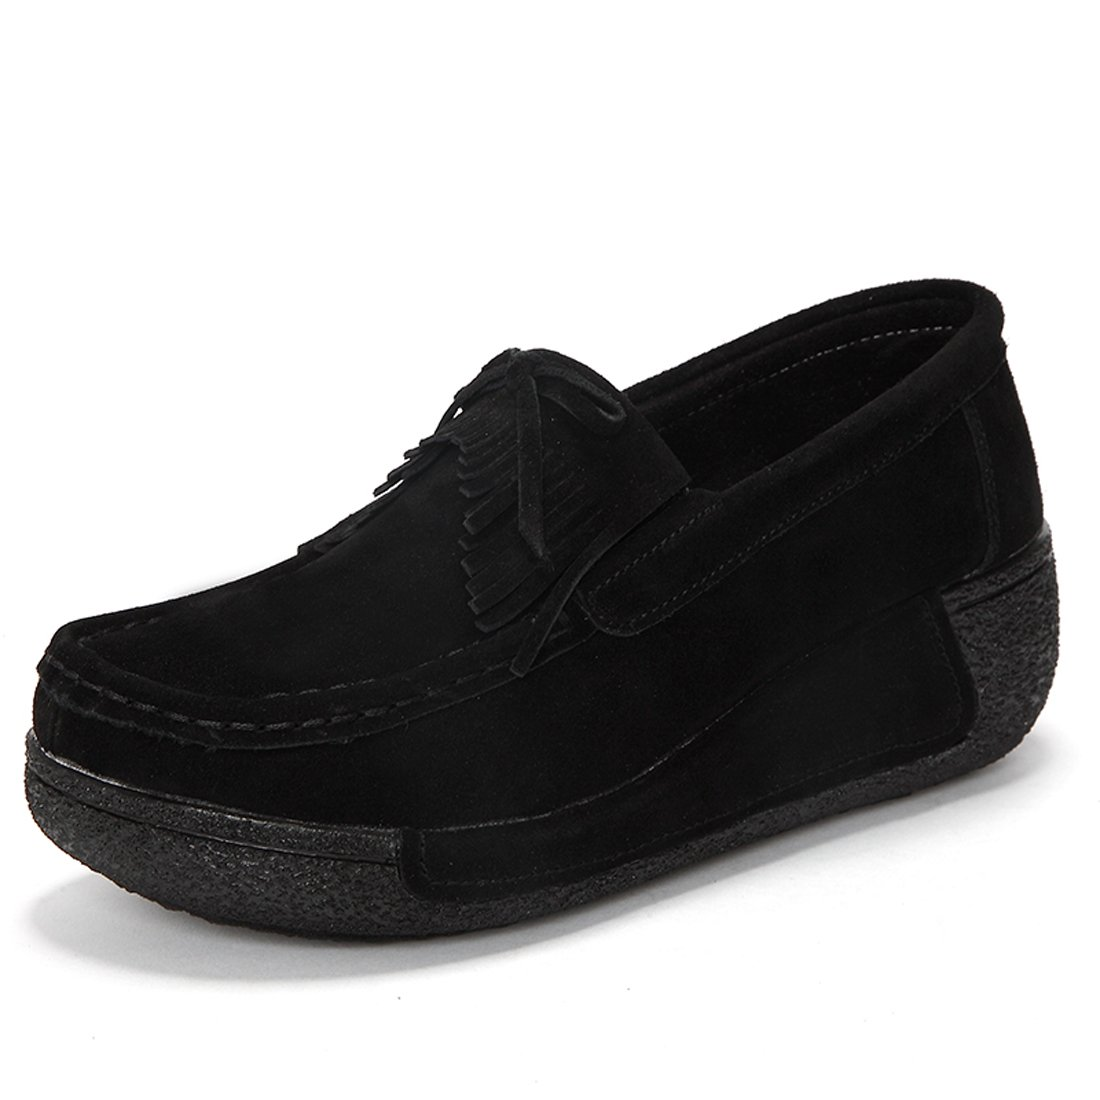 Z.SUO Suède Mocassins Femmes Suède Casuel Confort Chaussures Loafers Chaussures Z.SUO Noir.2 1244160 - therethere.space